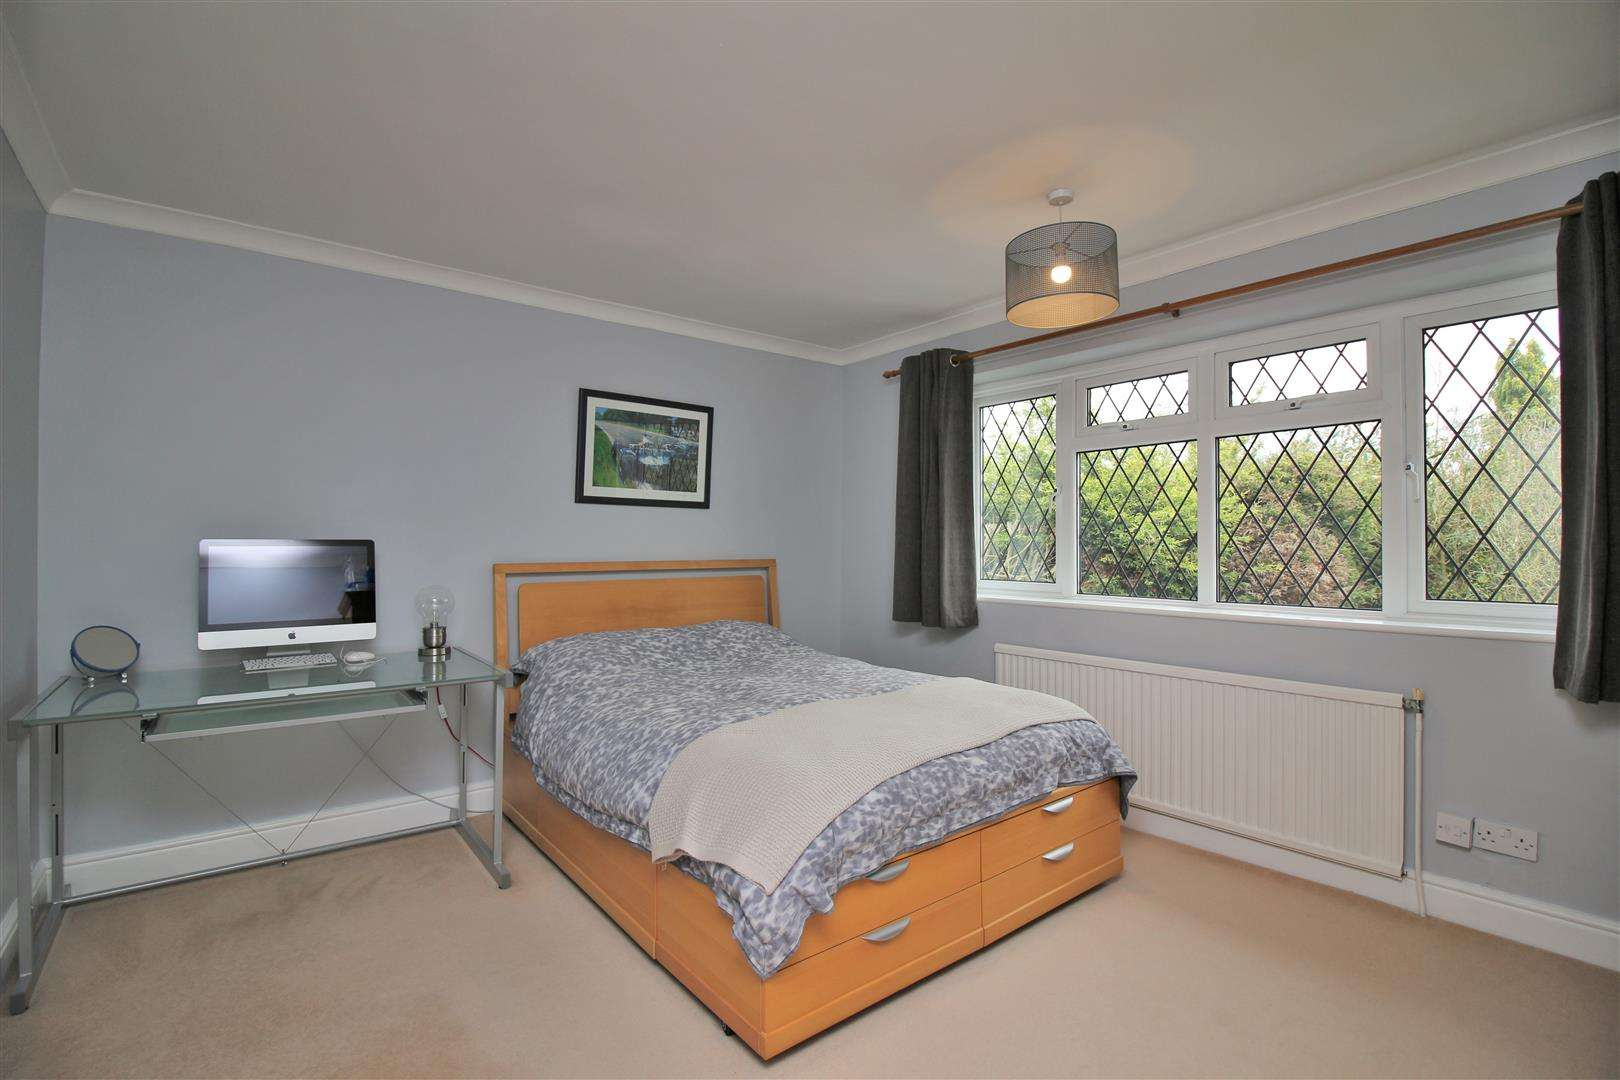 5 bed for sale - (Property Image 9)